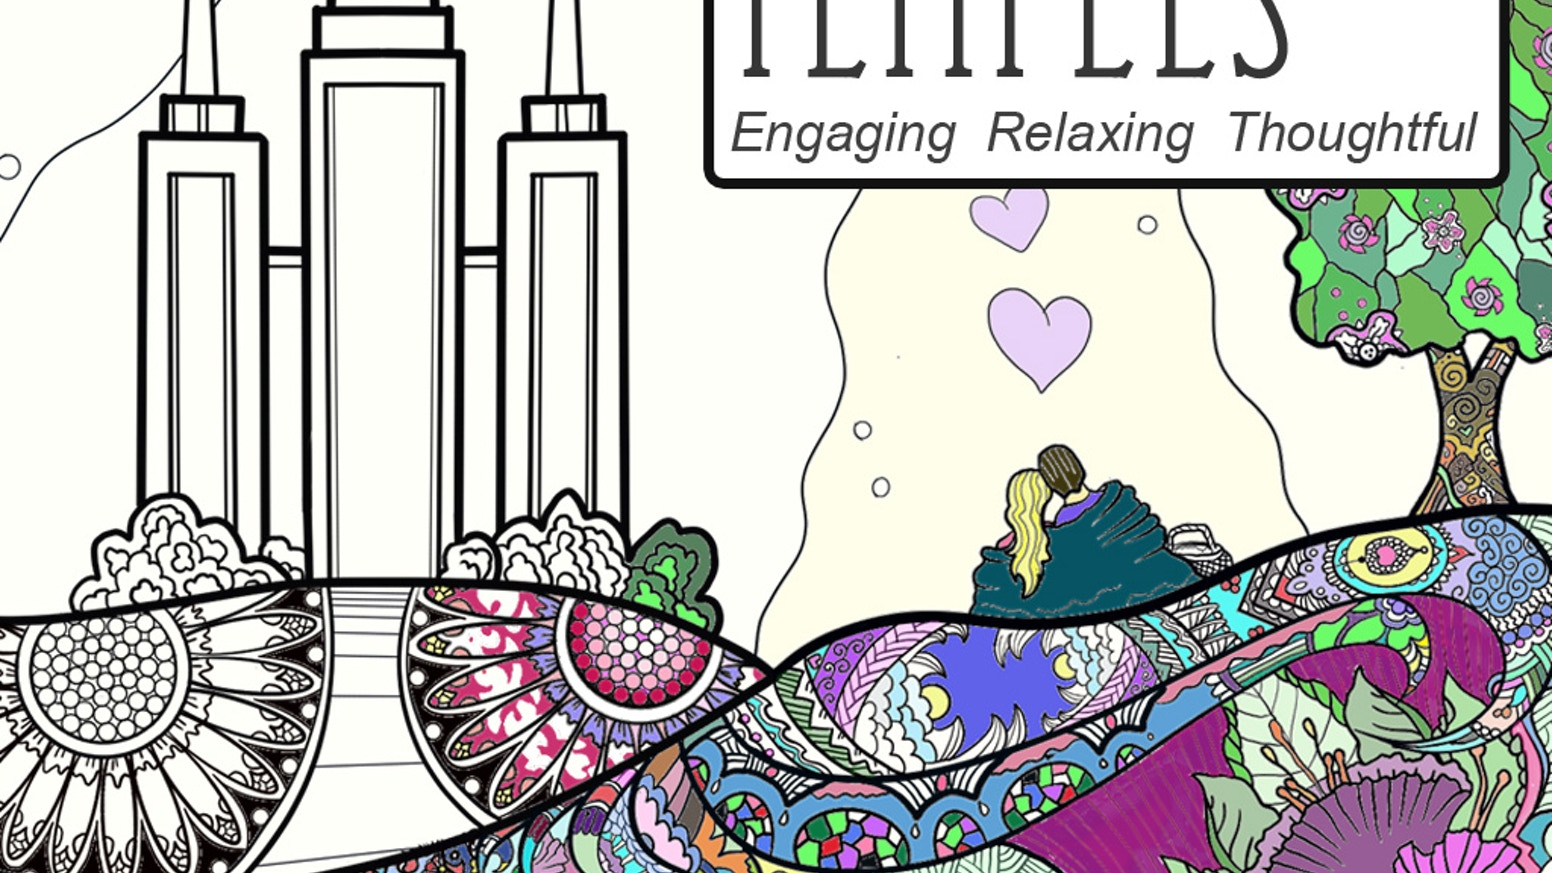 A coloring book for adults based on LDS Temples by Jeanette